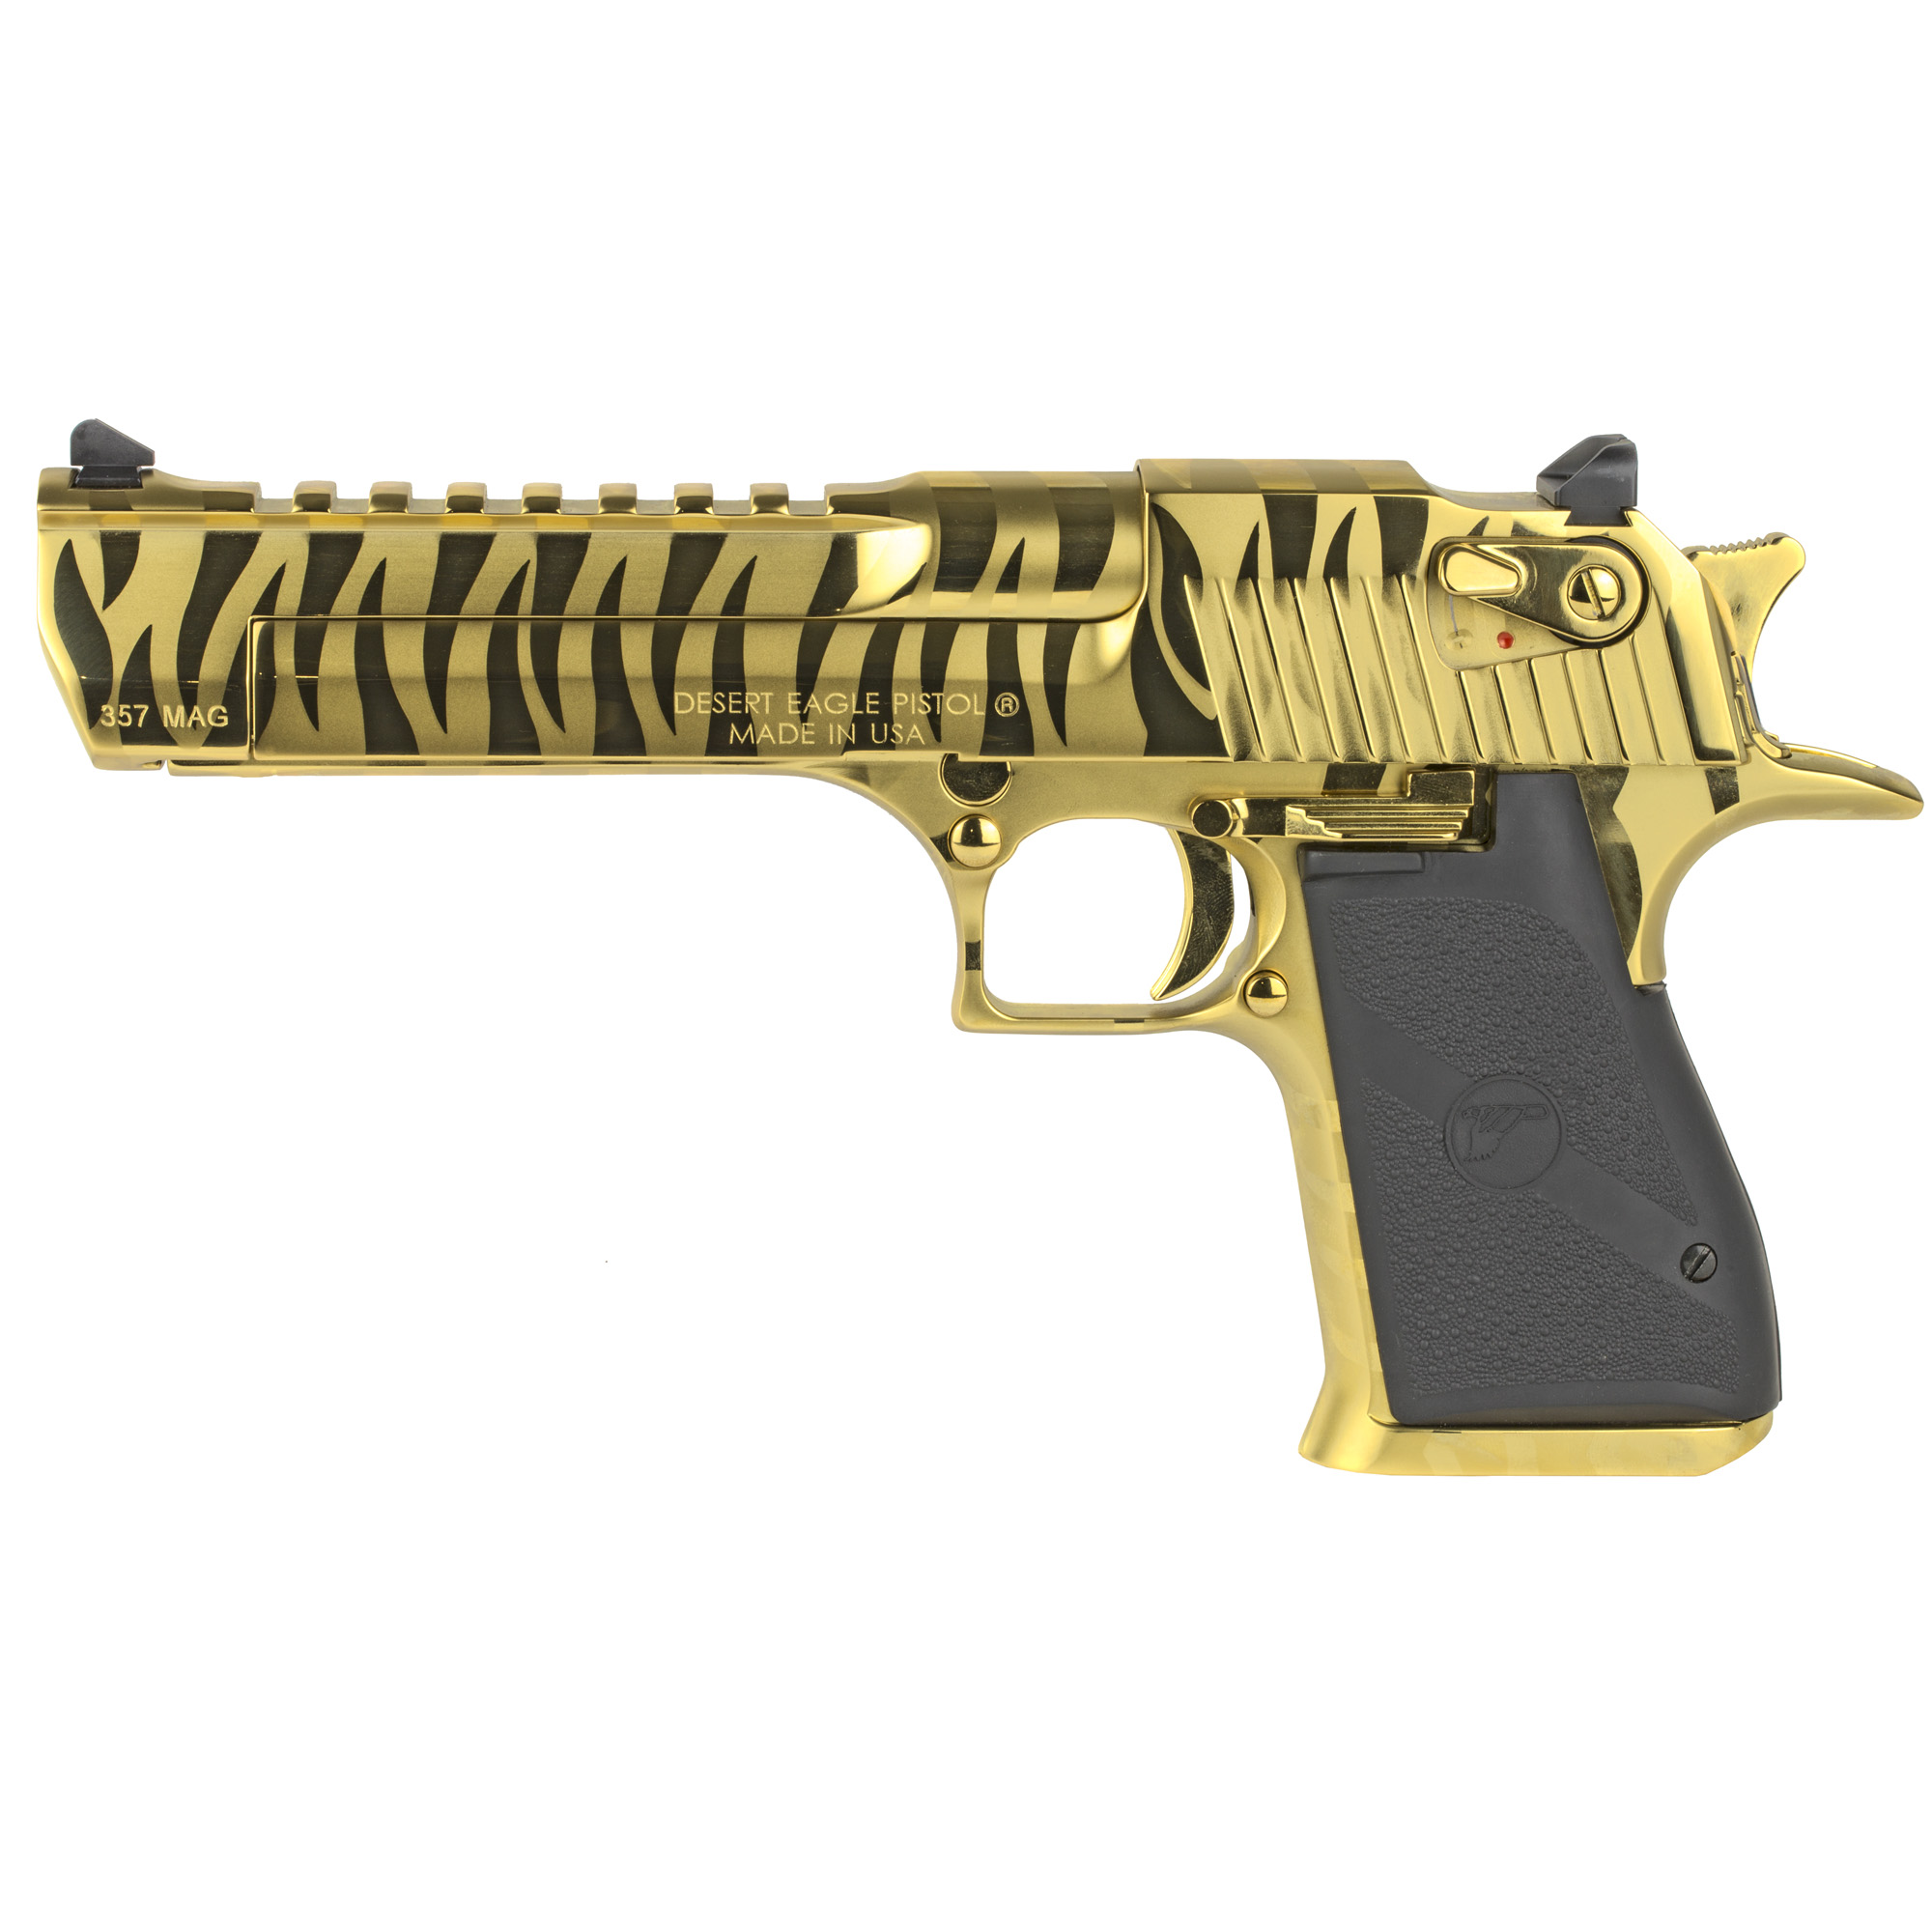 """After 25 years of being accessorized"""" customized and re-imagined in countless movies"""" television shows and video games"""" the Desert Eagle Pistol has emerged as a pop-culture icon. You can customize your Desert Eagle Pistol with a variety of impressive finishes to add your own distinctive twist to this timeless firearm. All models feature a full picatinny style accessory rail on the barrel from the end of the chamber to right behind the front sight and standard ambidextrous safeties. Comes with one 9-round magazine."""